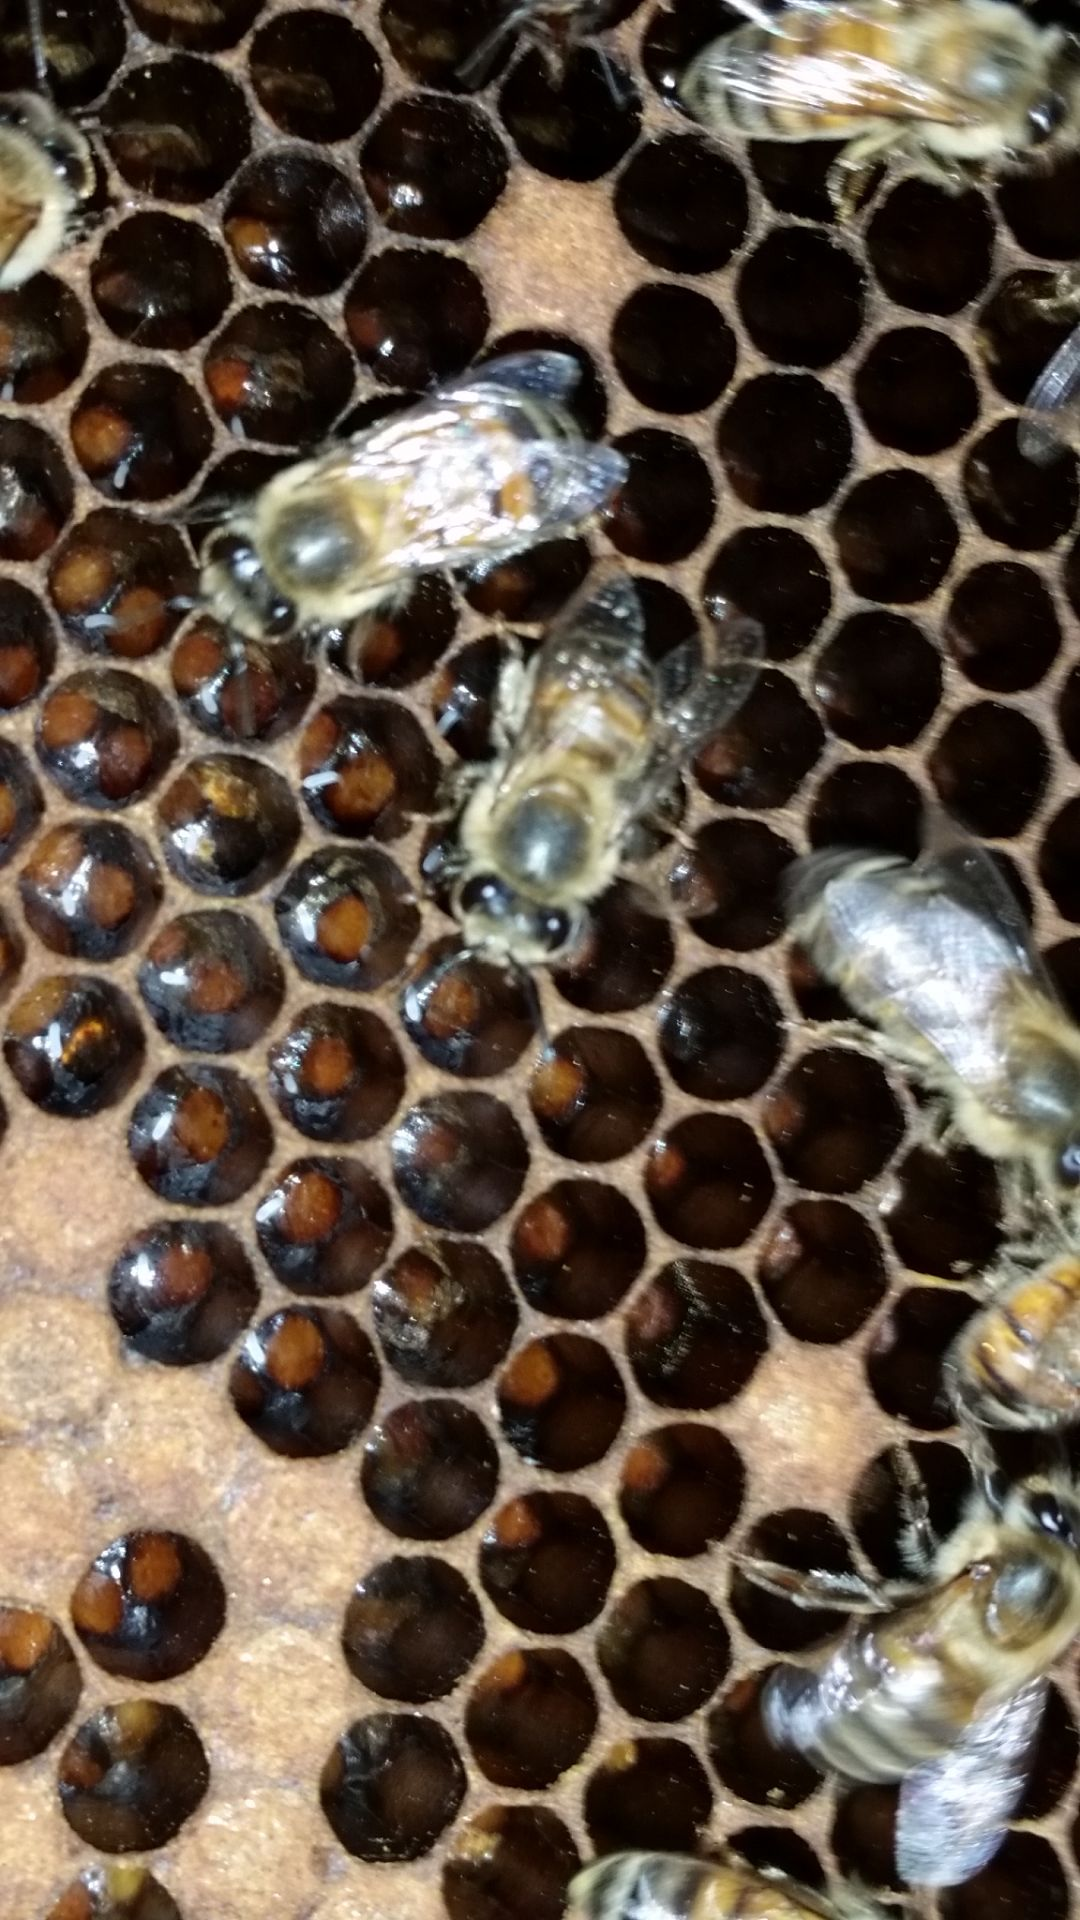 80 000 Africanized Bees Removed From Oro Valley Home Local News Tucson Com